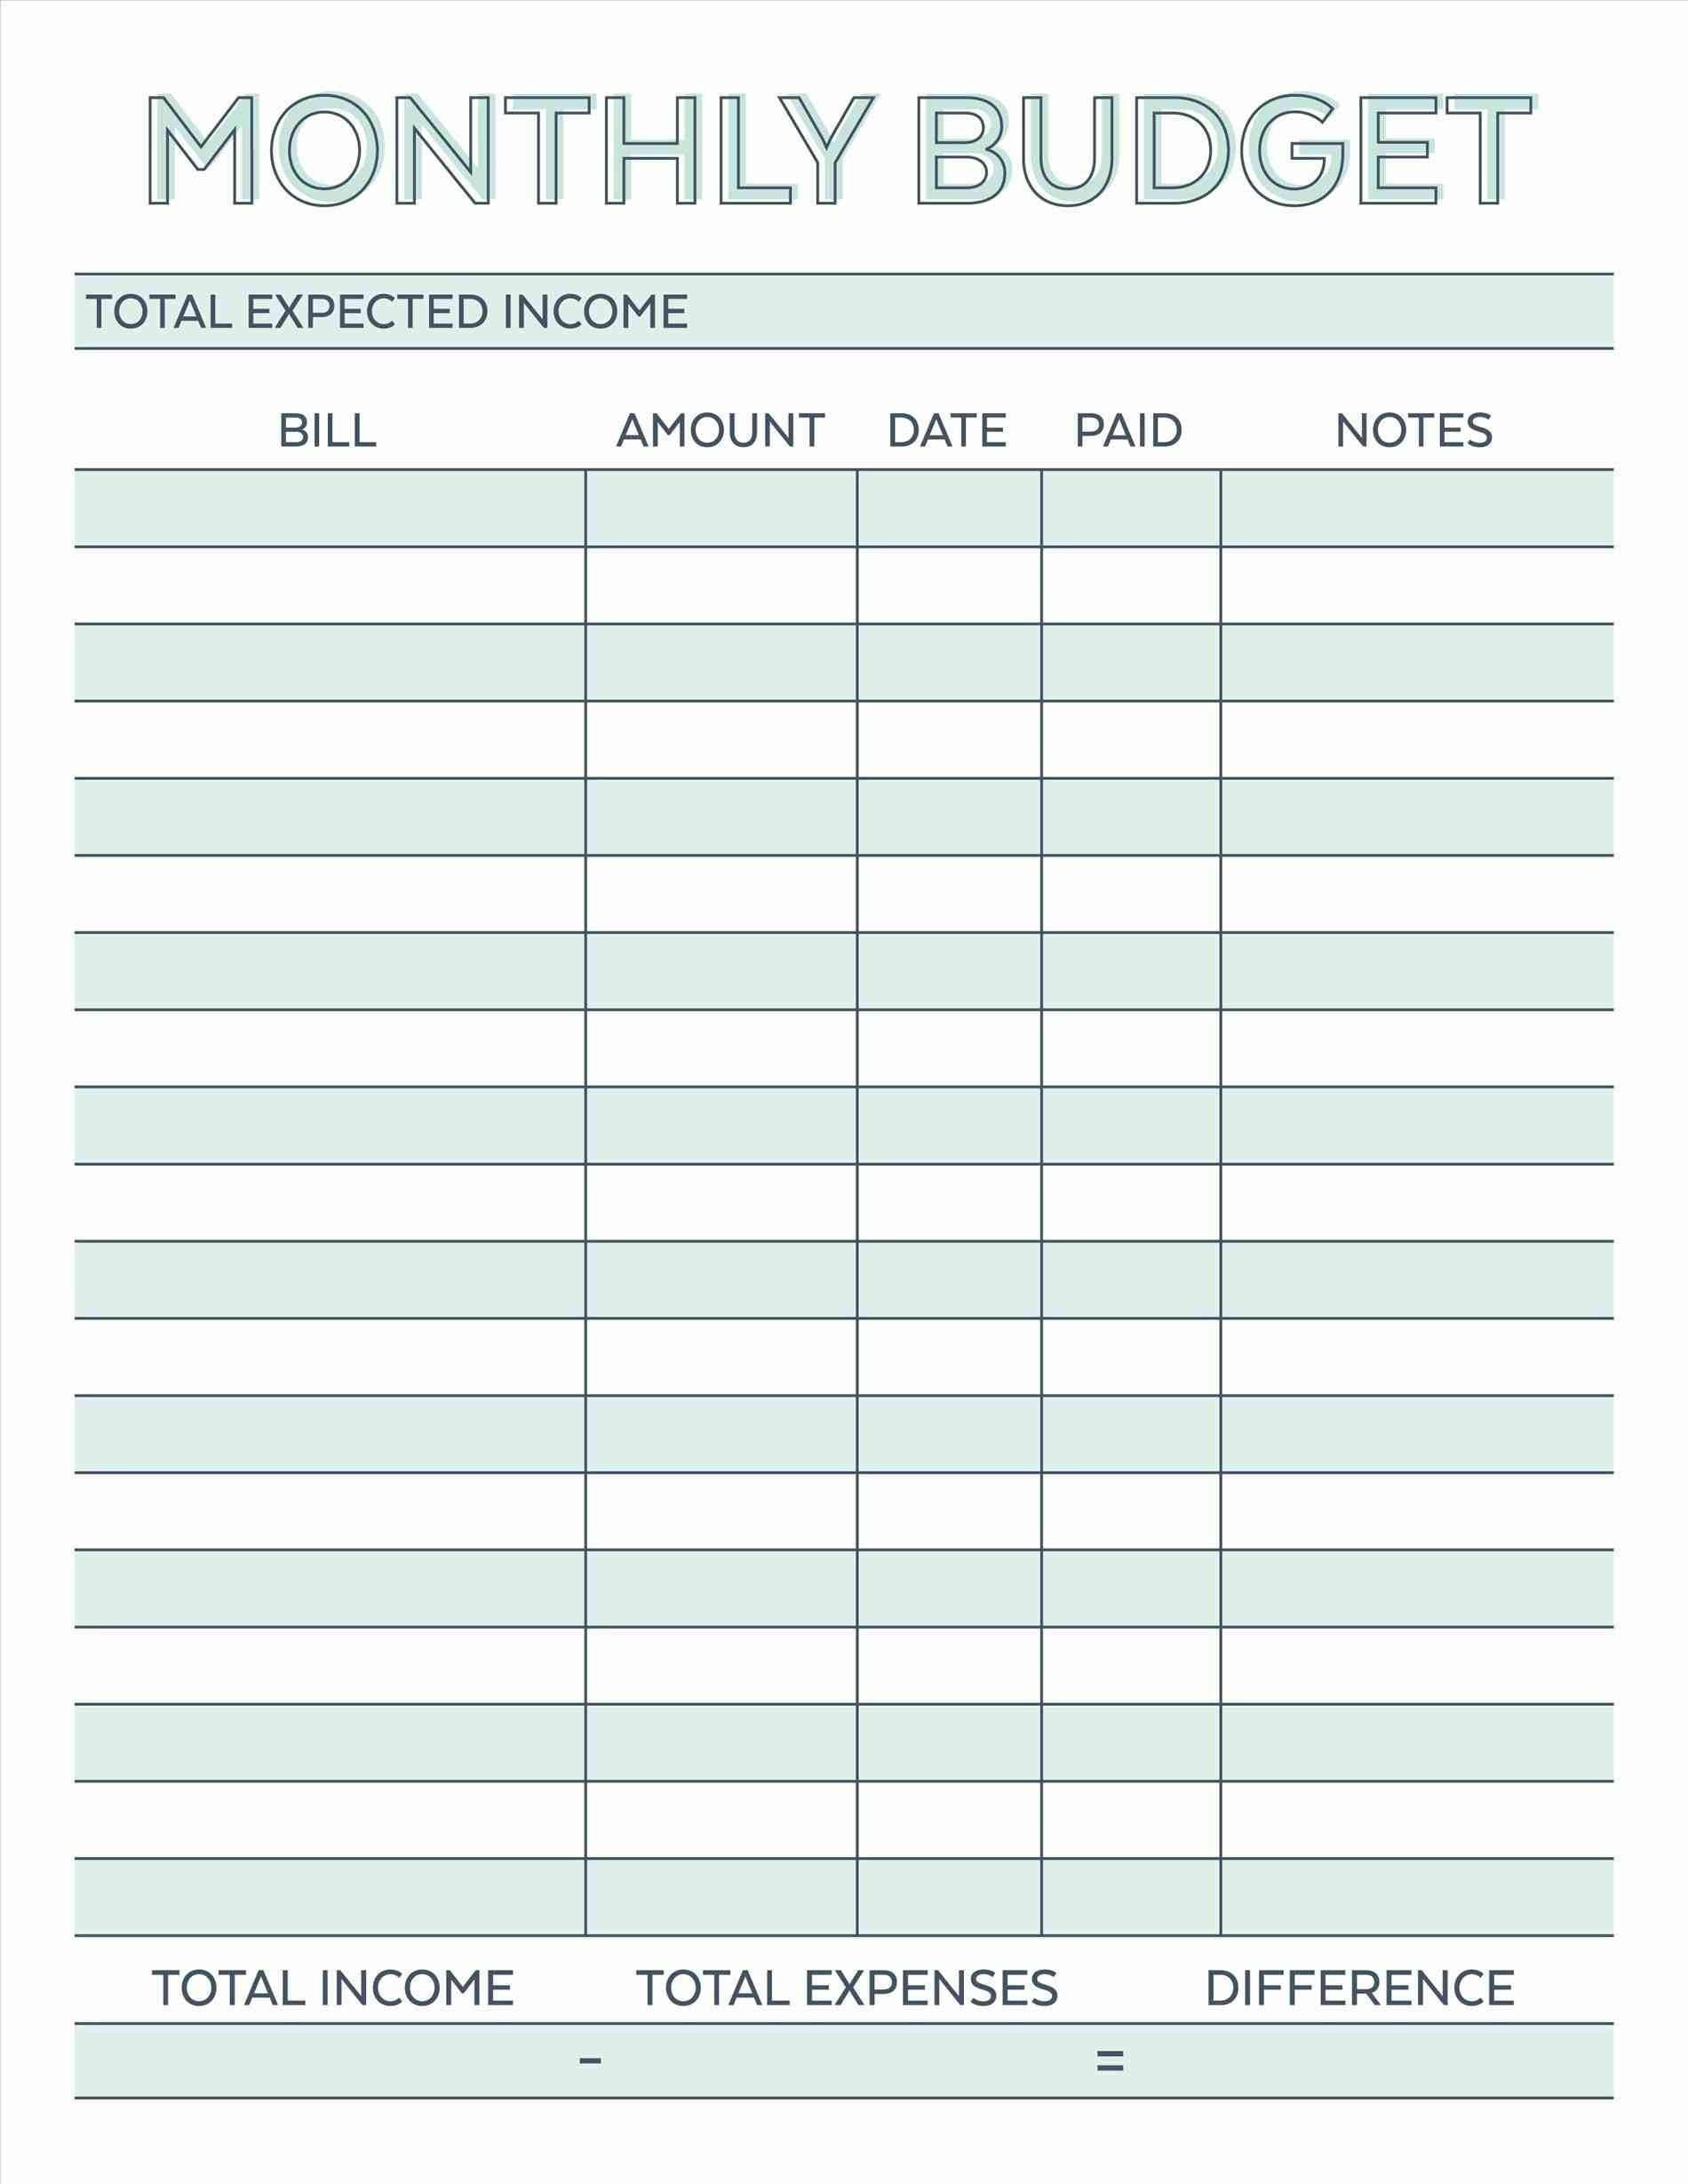 Budget Planner Planner Worksheet Monthly Bills Template Free regarding Free Printable Monthly Bill Payment Schedule